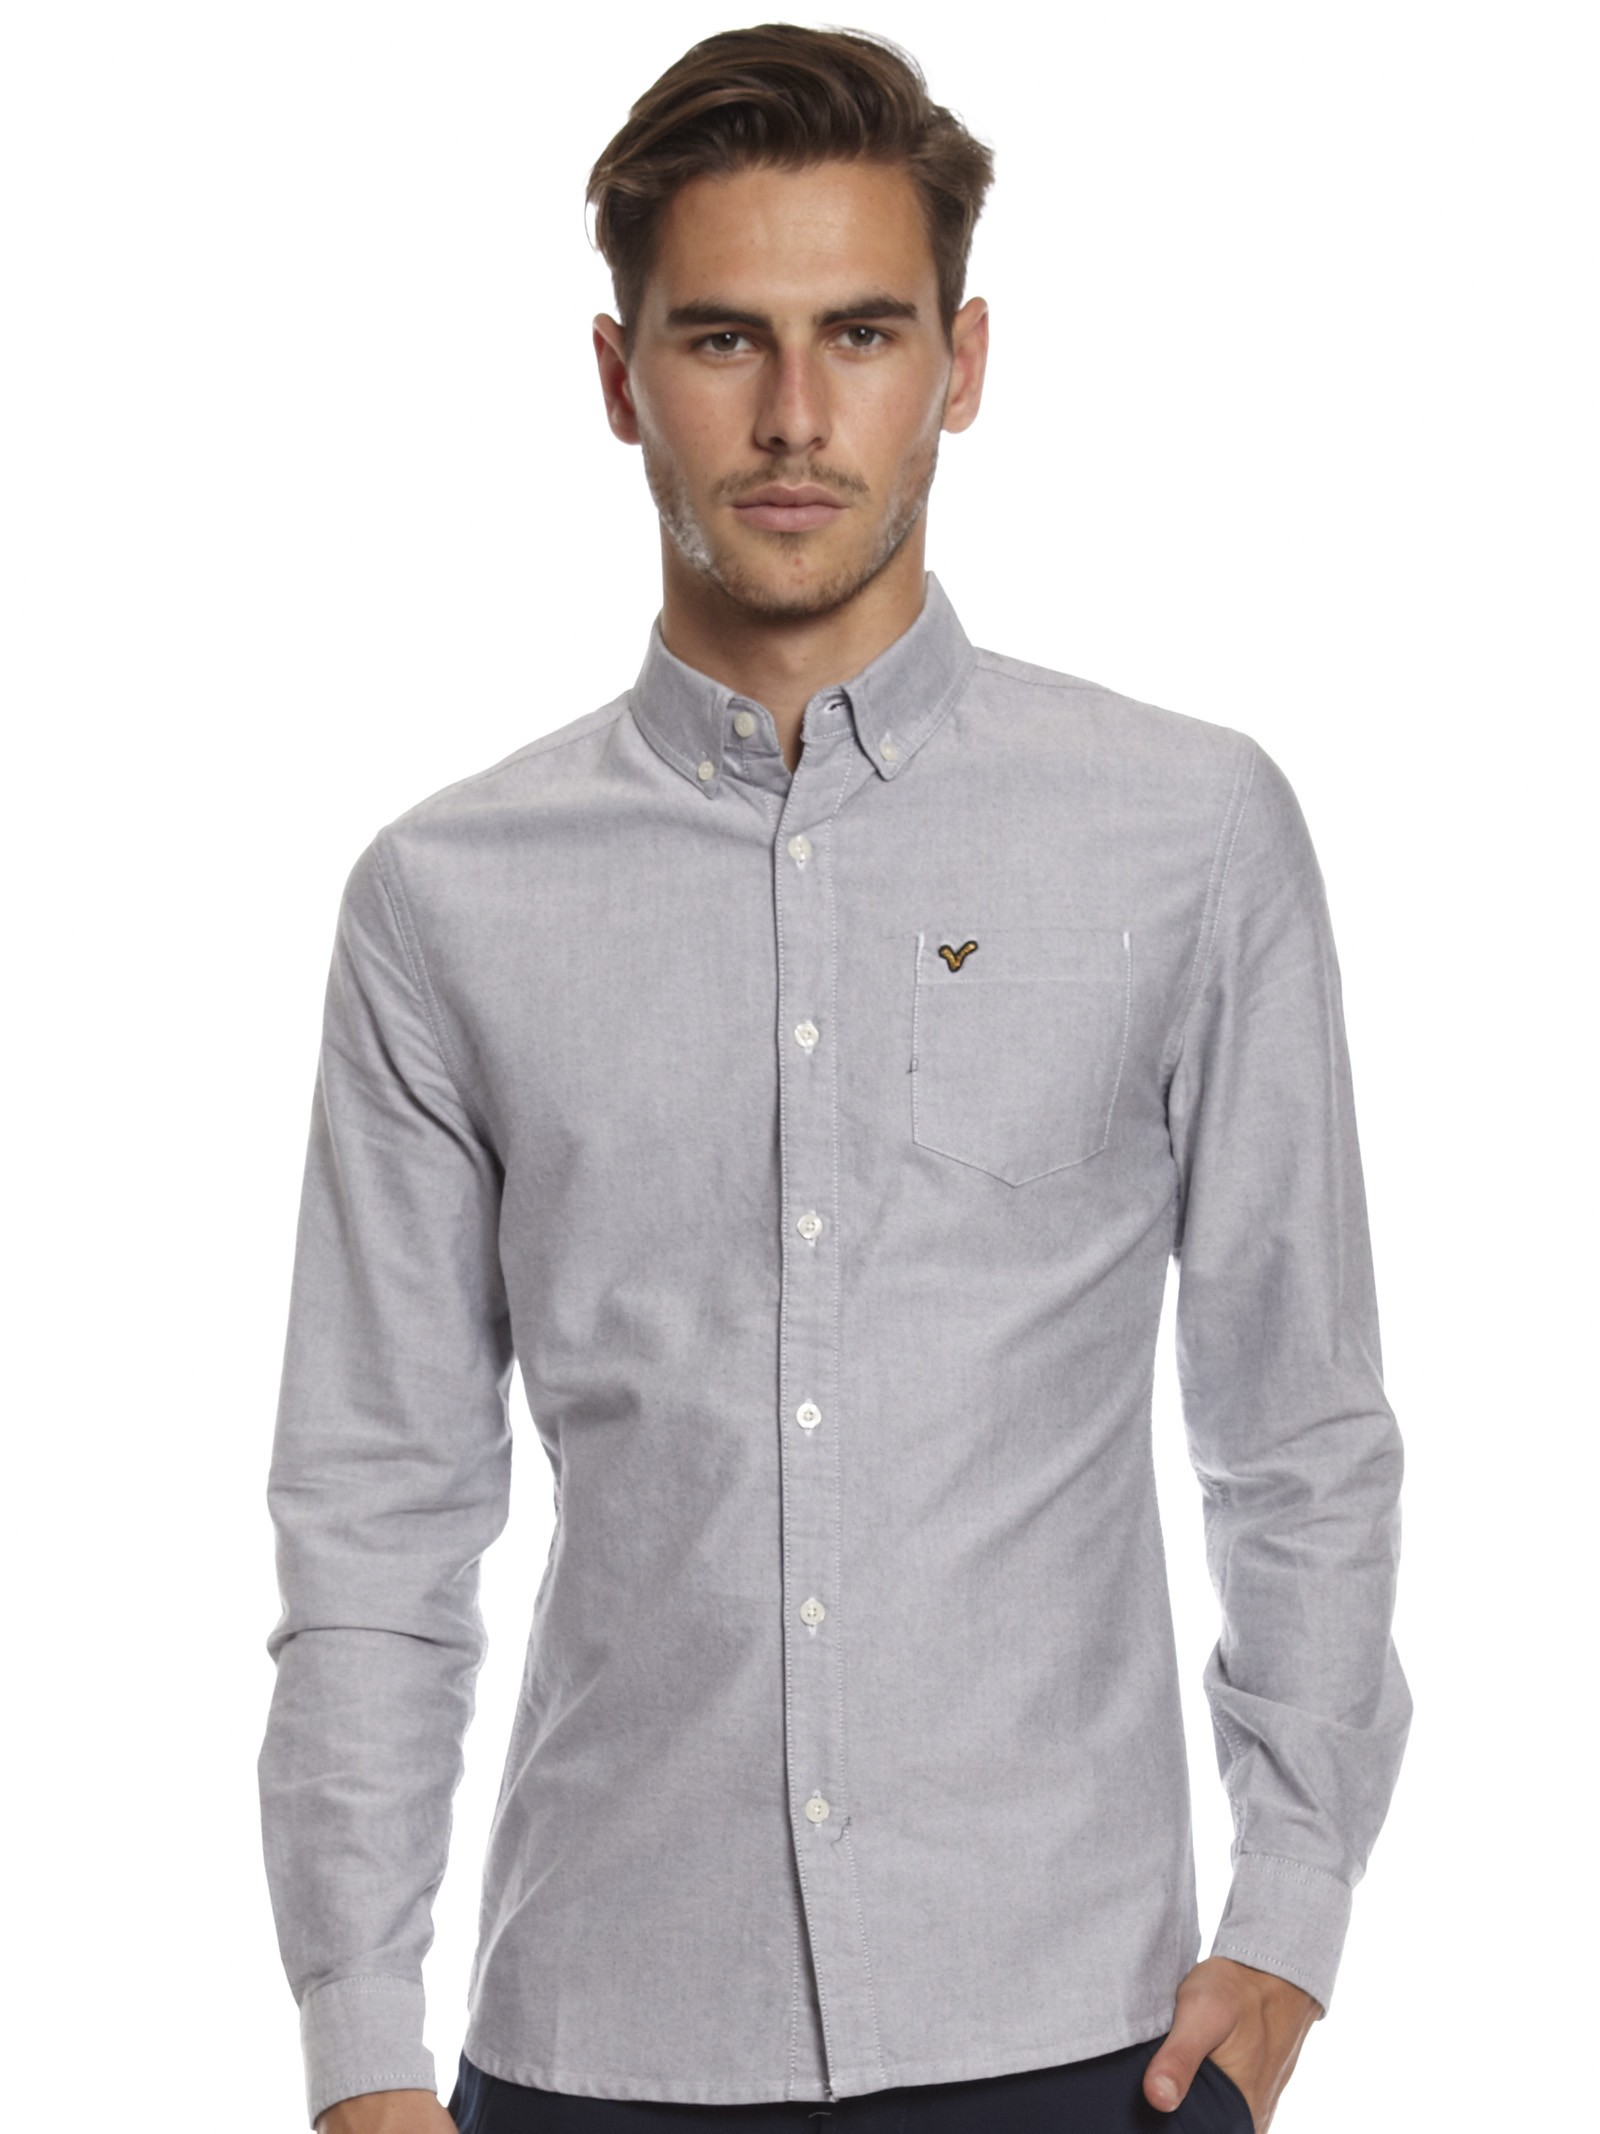 oxford shirts how to casually wear them